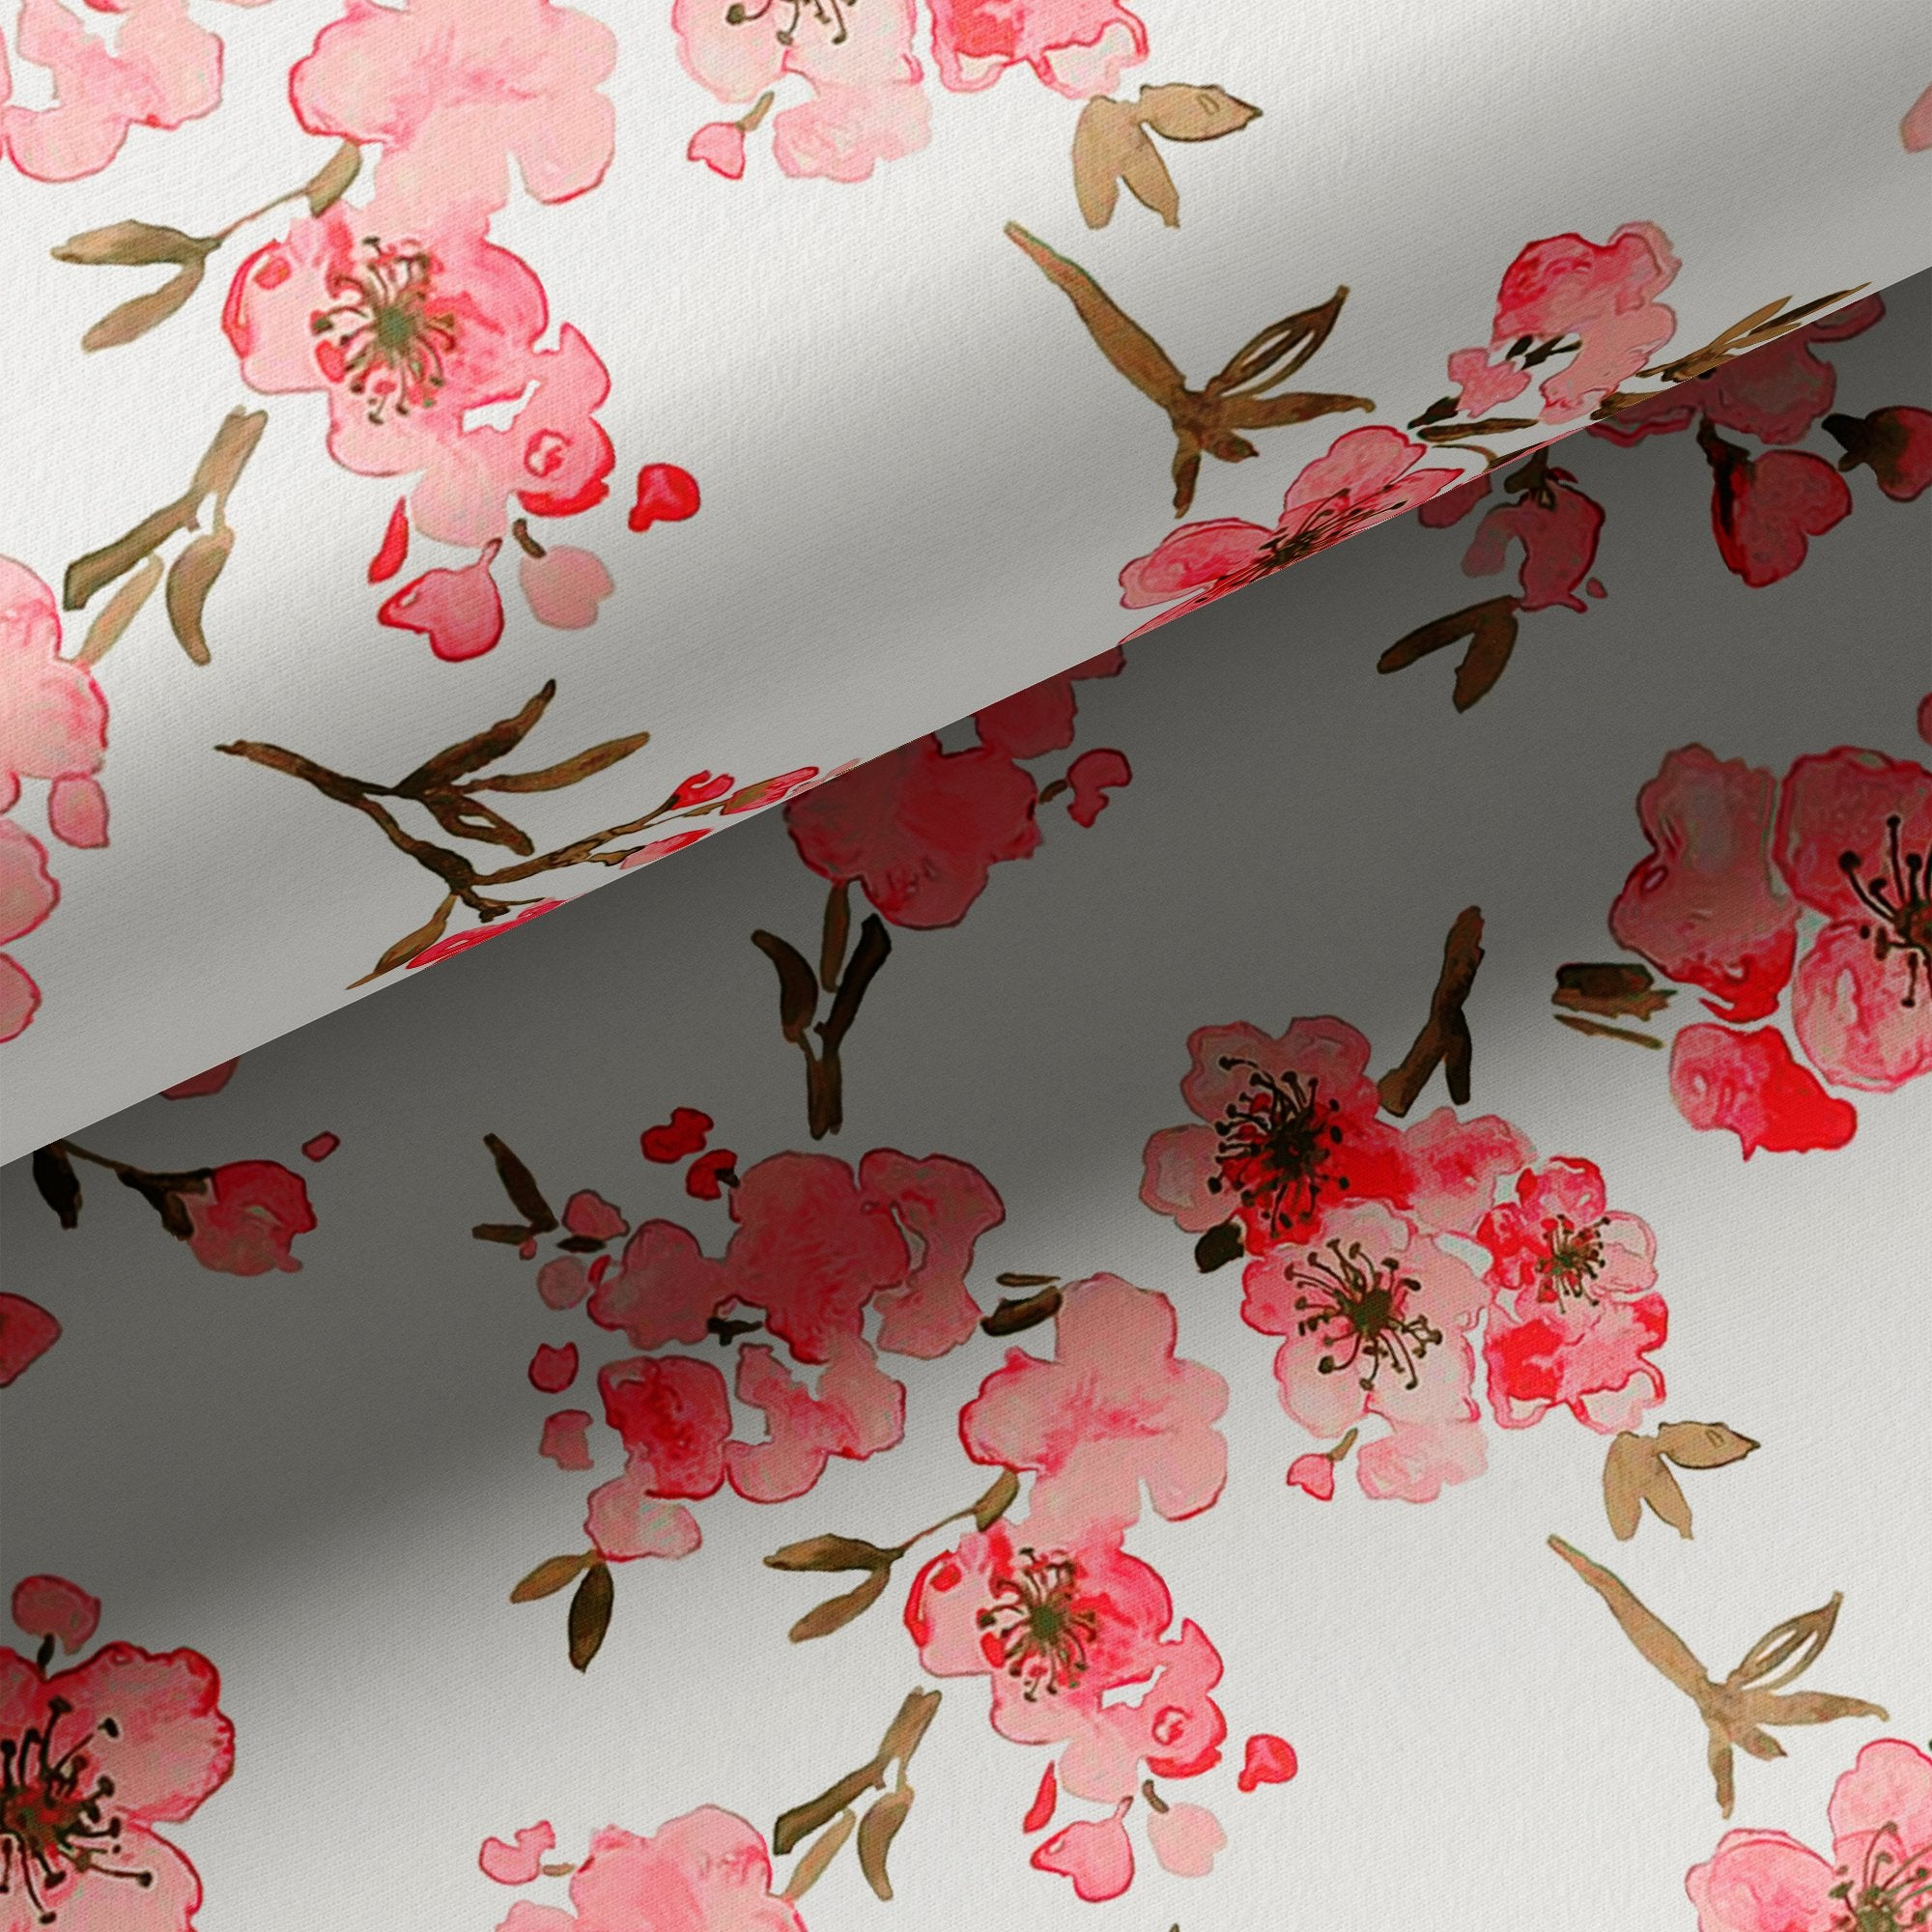 Beautiful Red Flowers over White Base Digital Printed Fabric - FAB VOGUE Studio. Shop Fabric @ www.fabvoguestudio.com